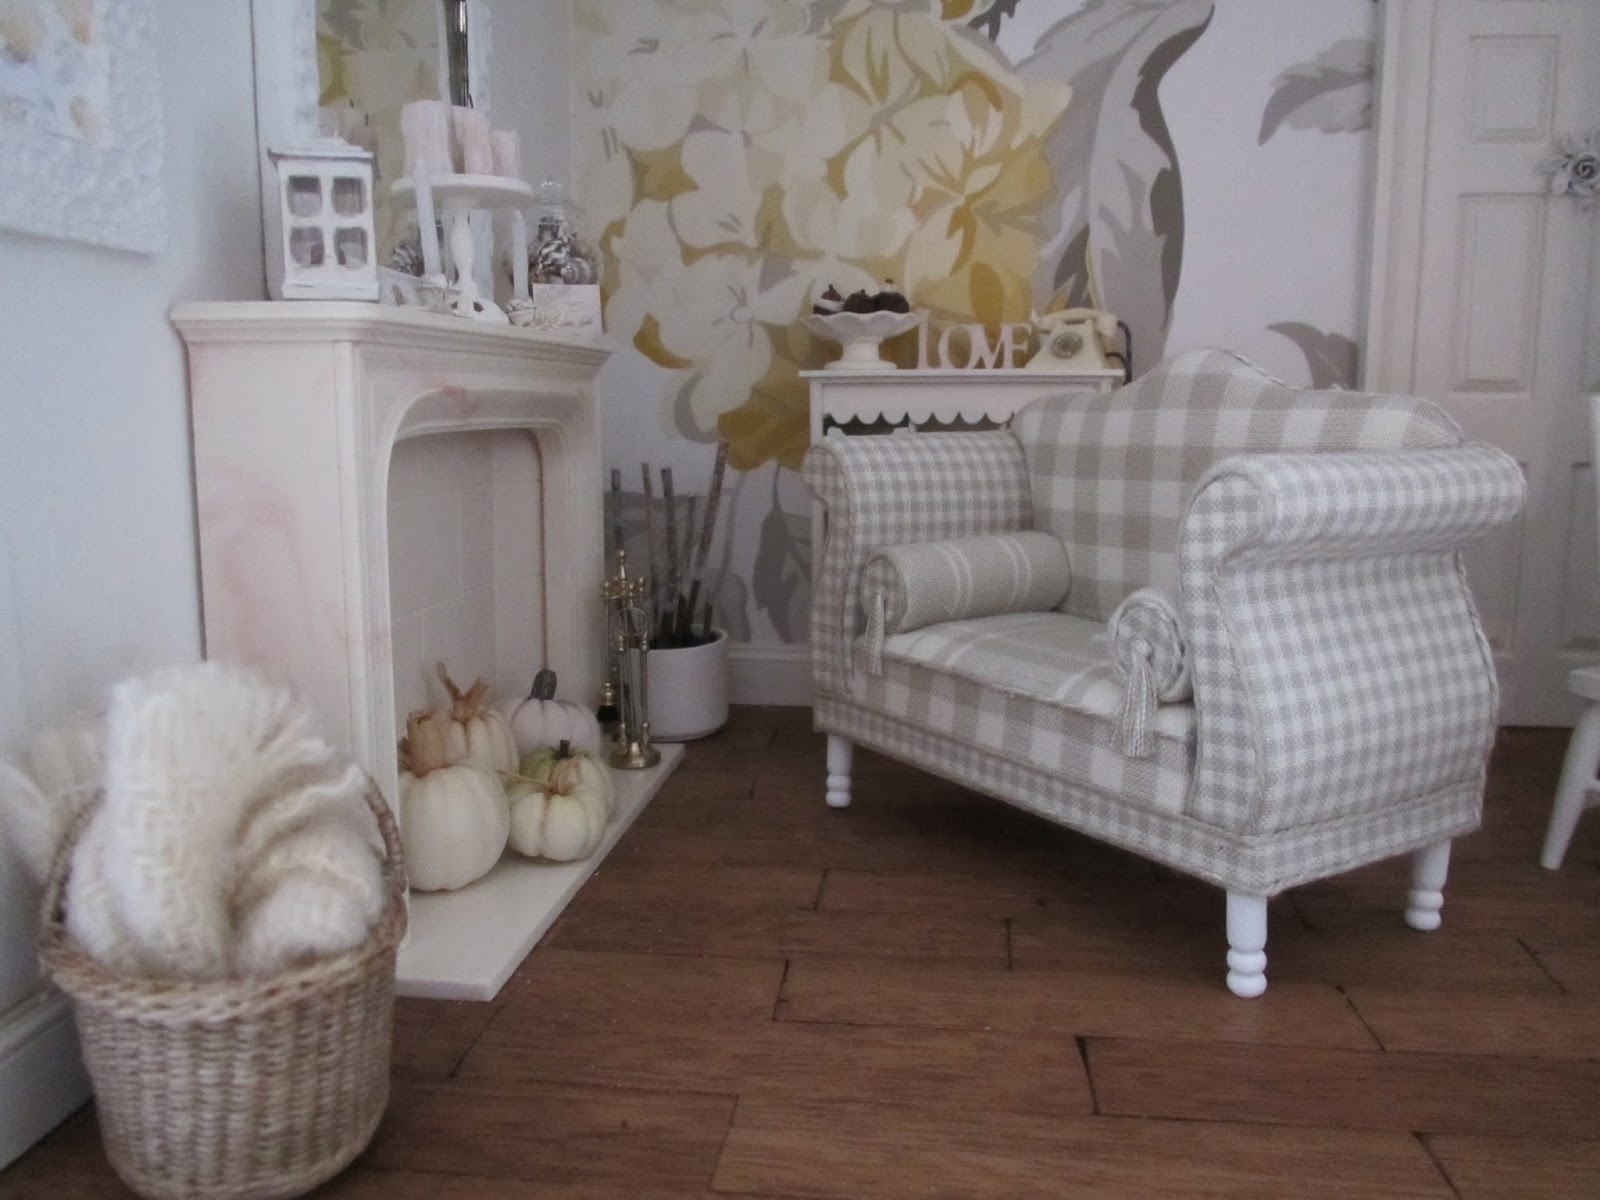 Shabby Chic Sofa | Aifaresidency intended for Shabby Chic Sofas (Image 10 of 10)